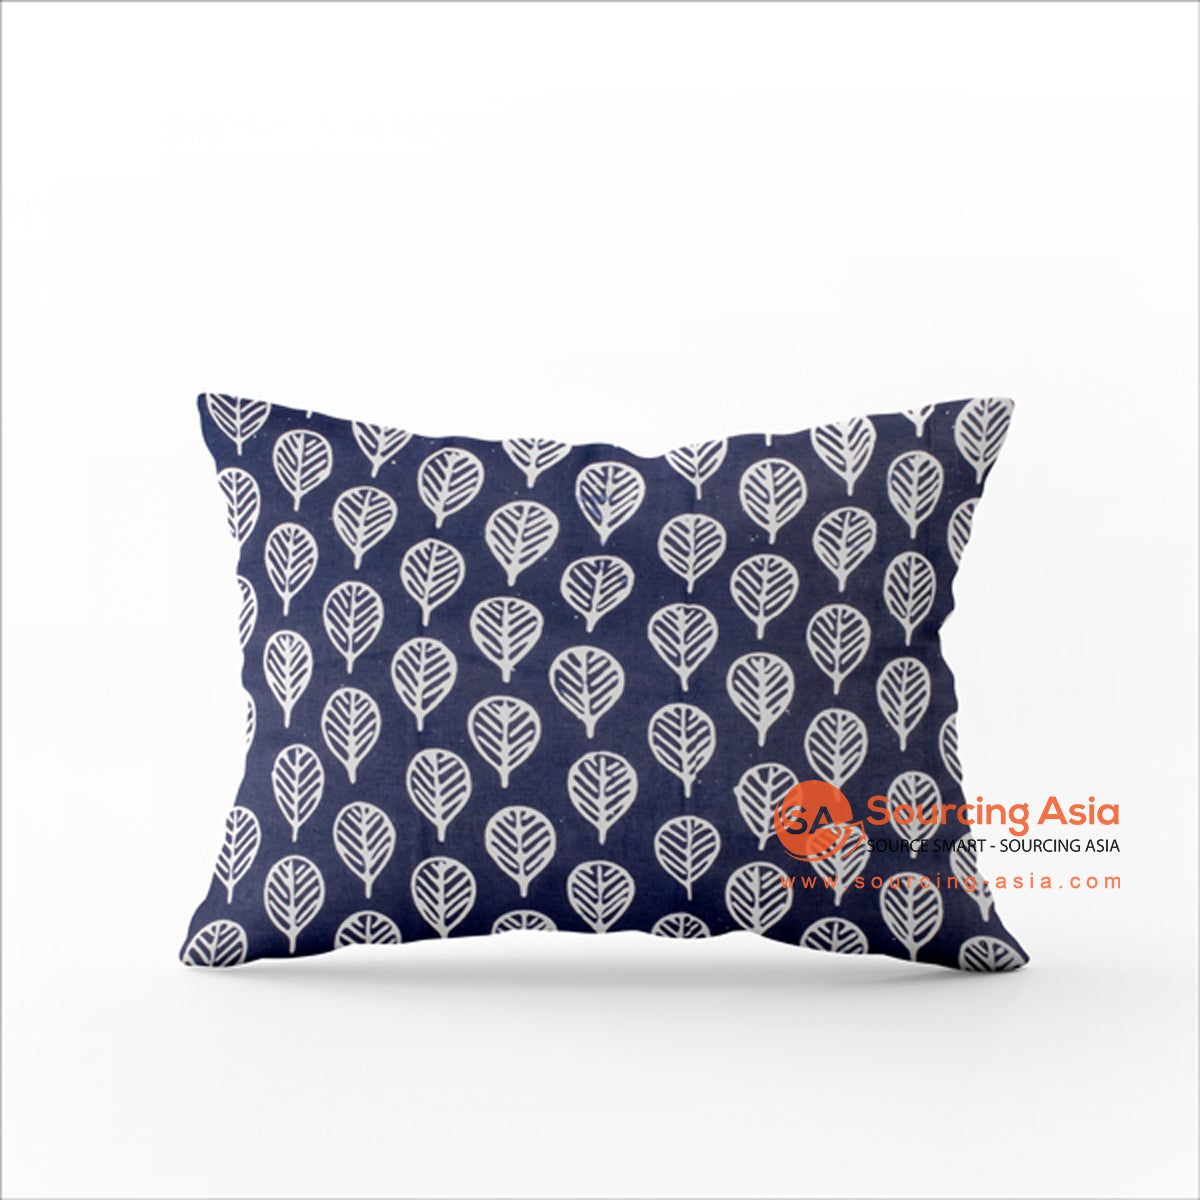 SHL165-15 BATIK STAMP CUSHION COVER